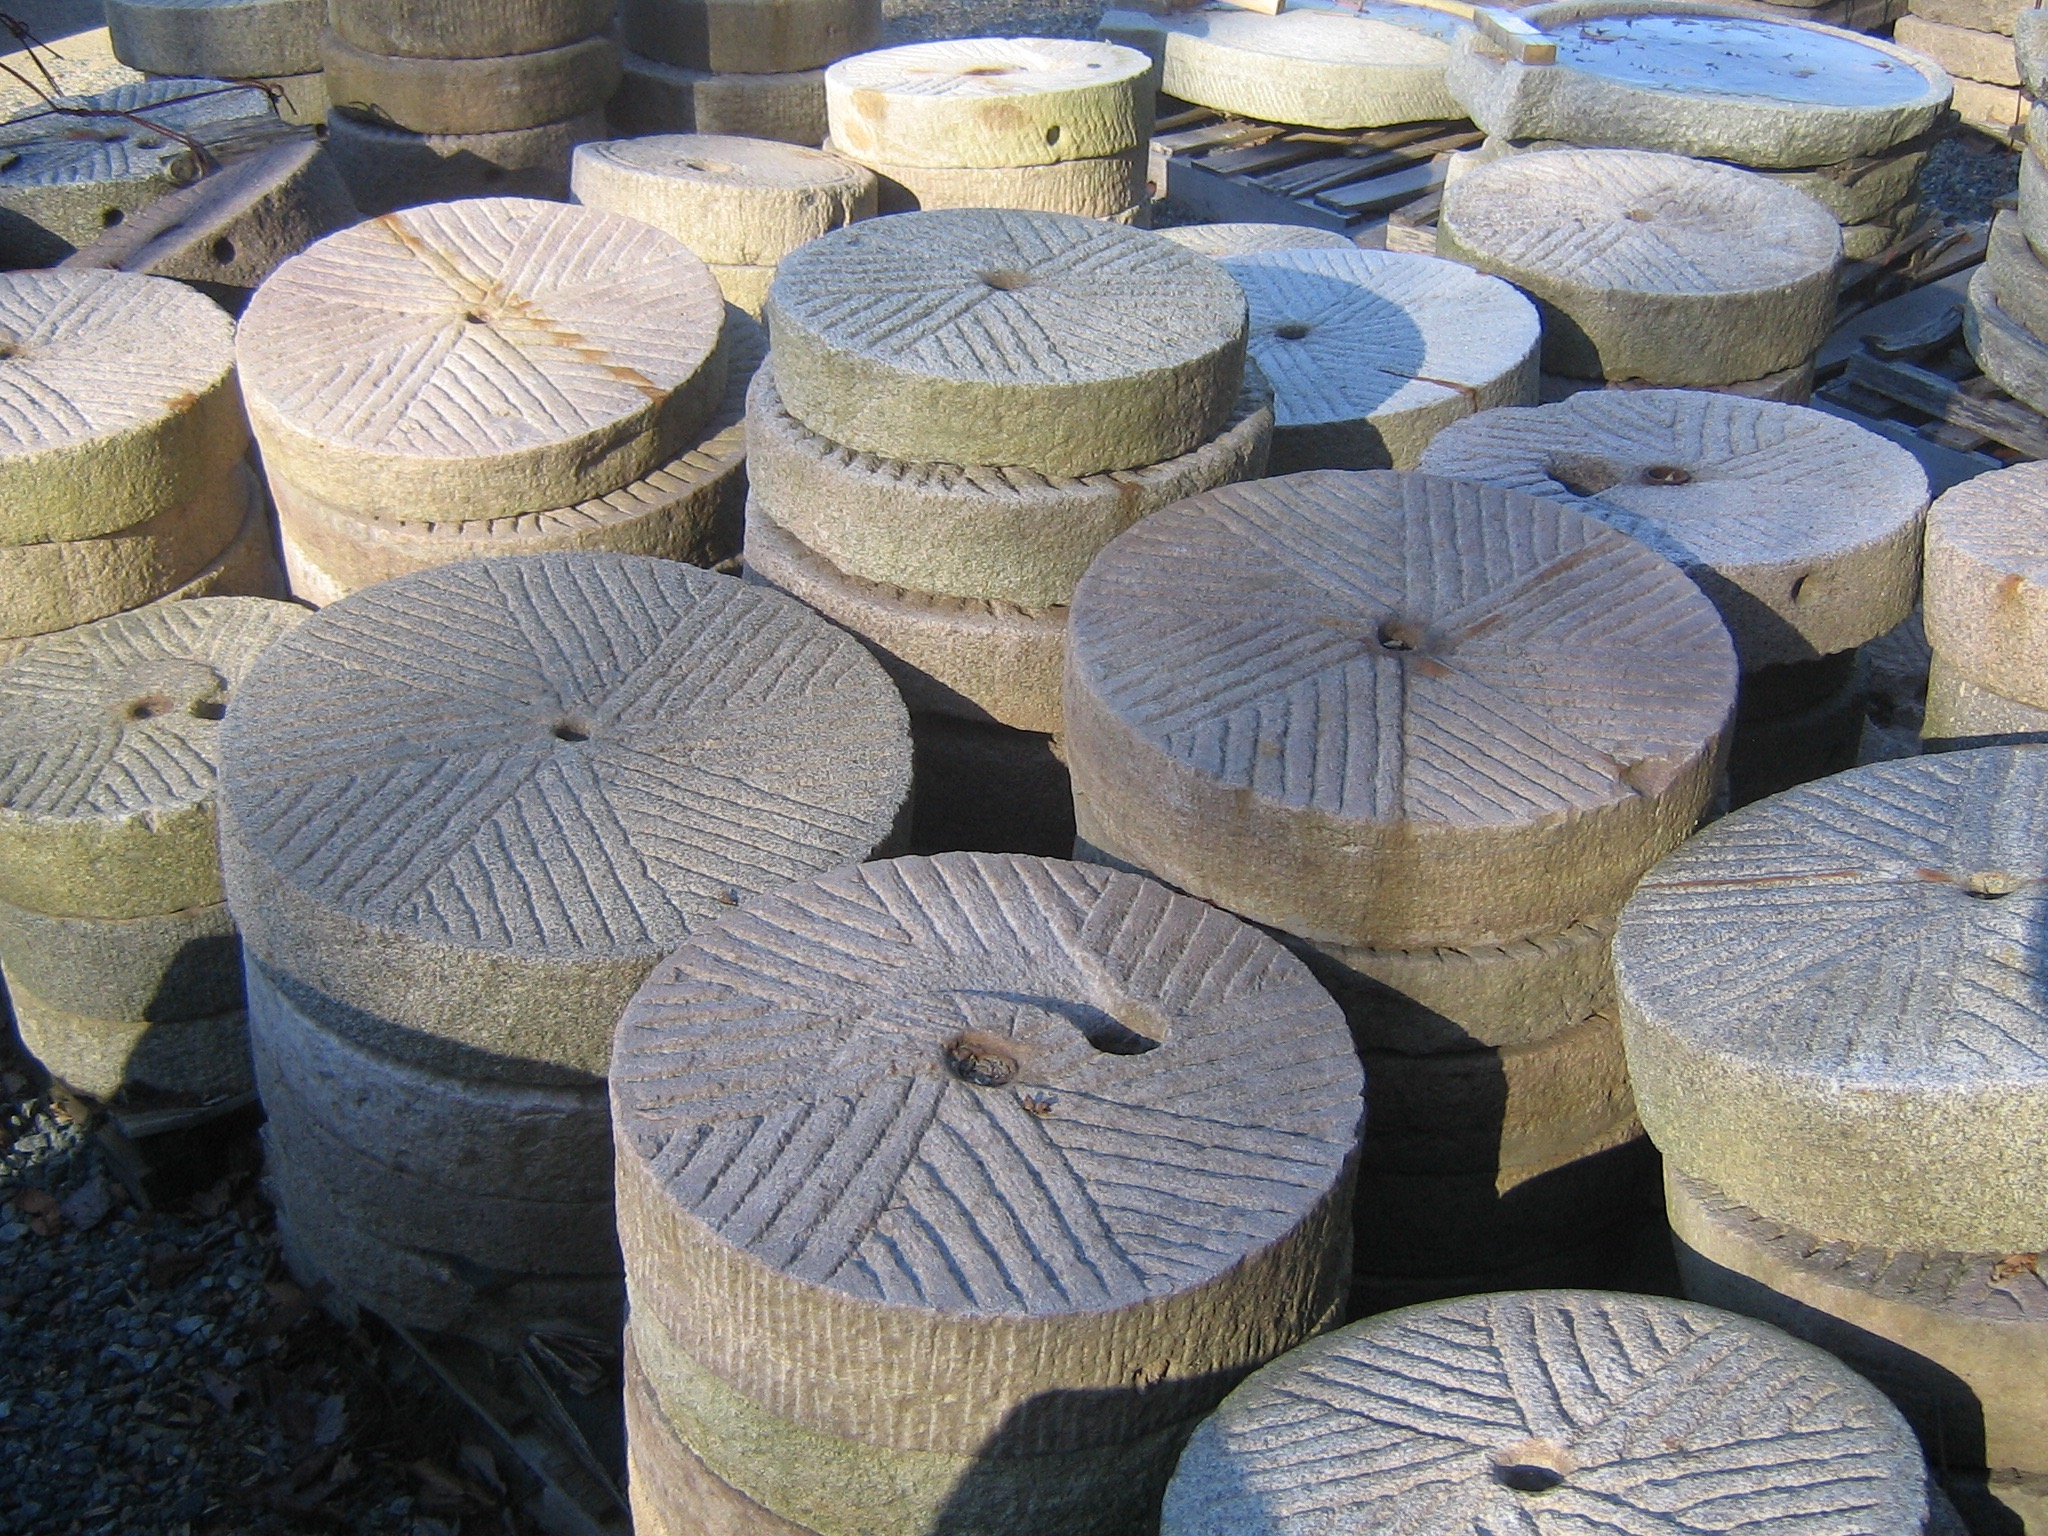 millstones troughs other specialty stones realgoods company. Black Bedroom Furniture Sets. Home Design Ideas